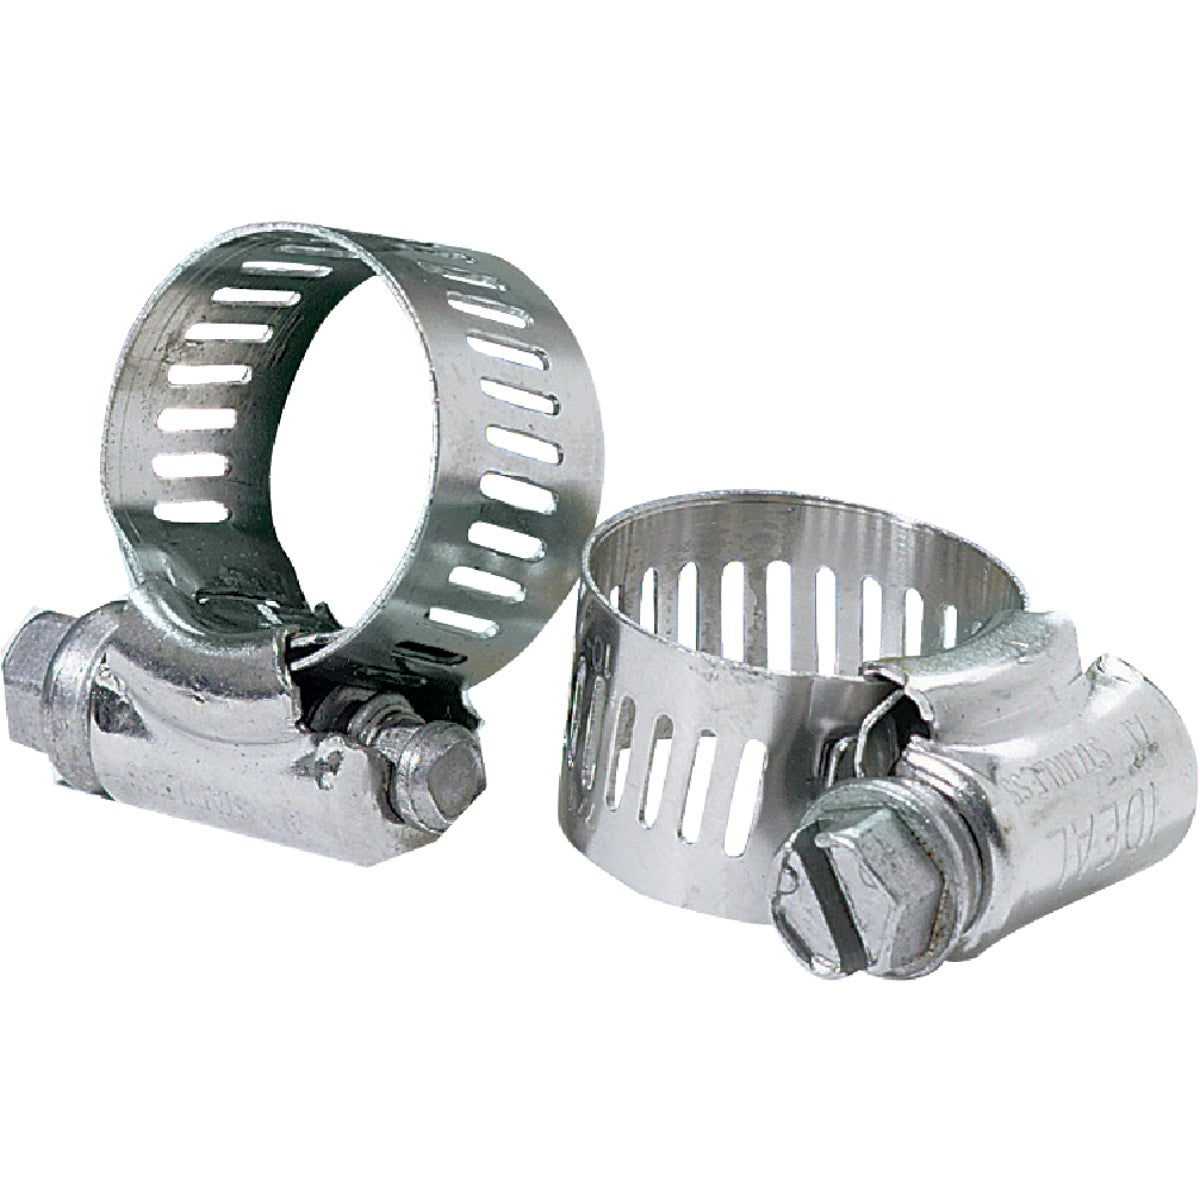 "2-3/4"" TO 3-3/4"" CLAMP"